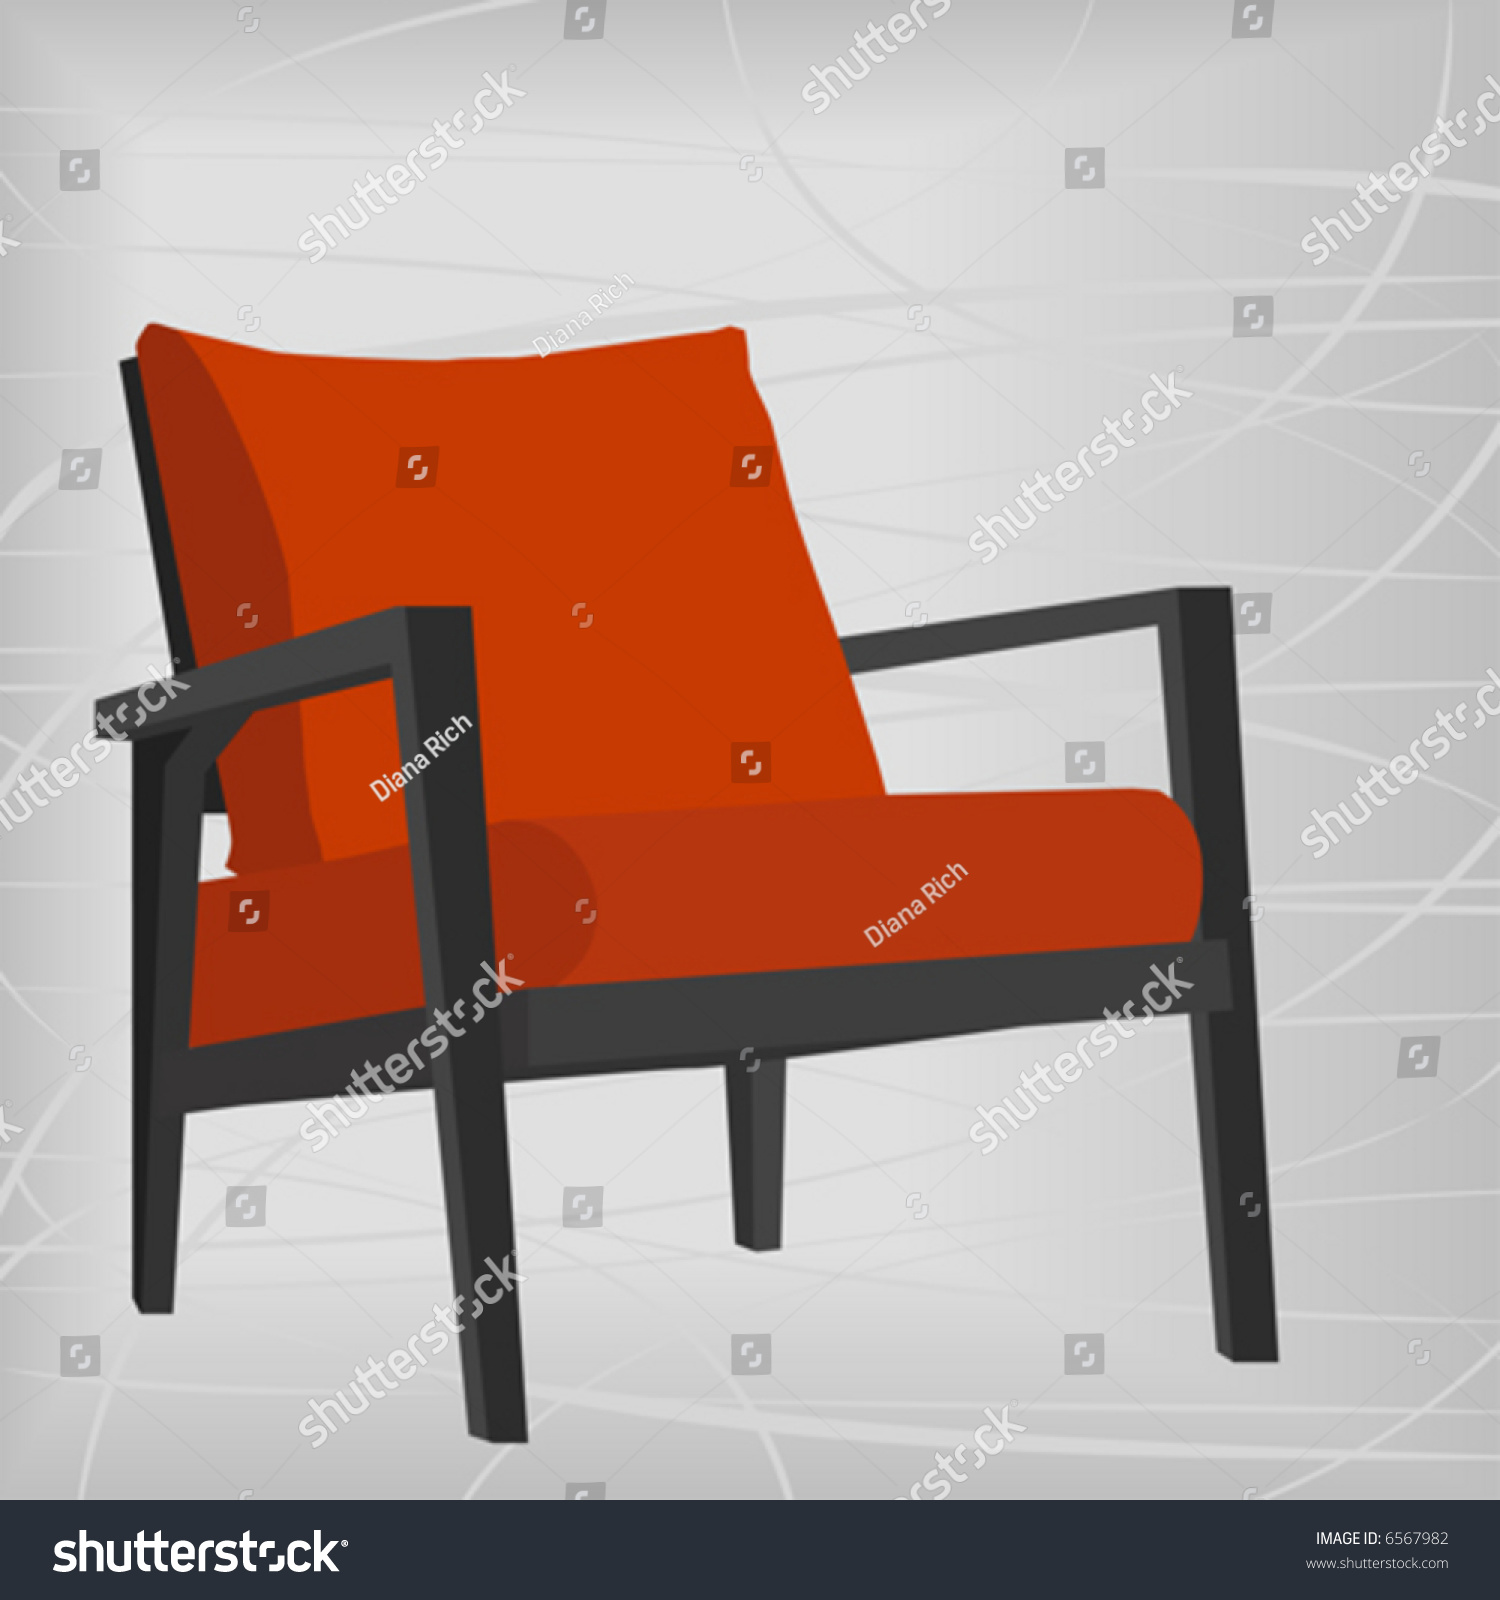 Stylish vintageretro chair design element easyedit stock for Chair design elements